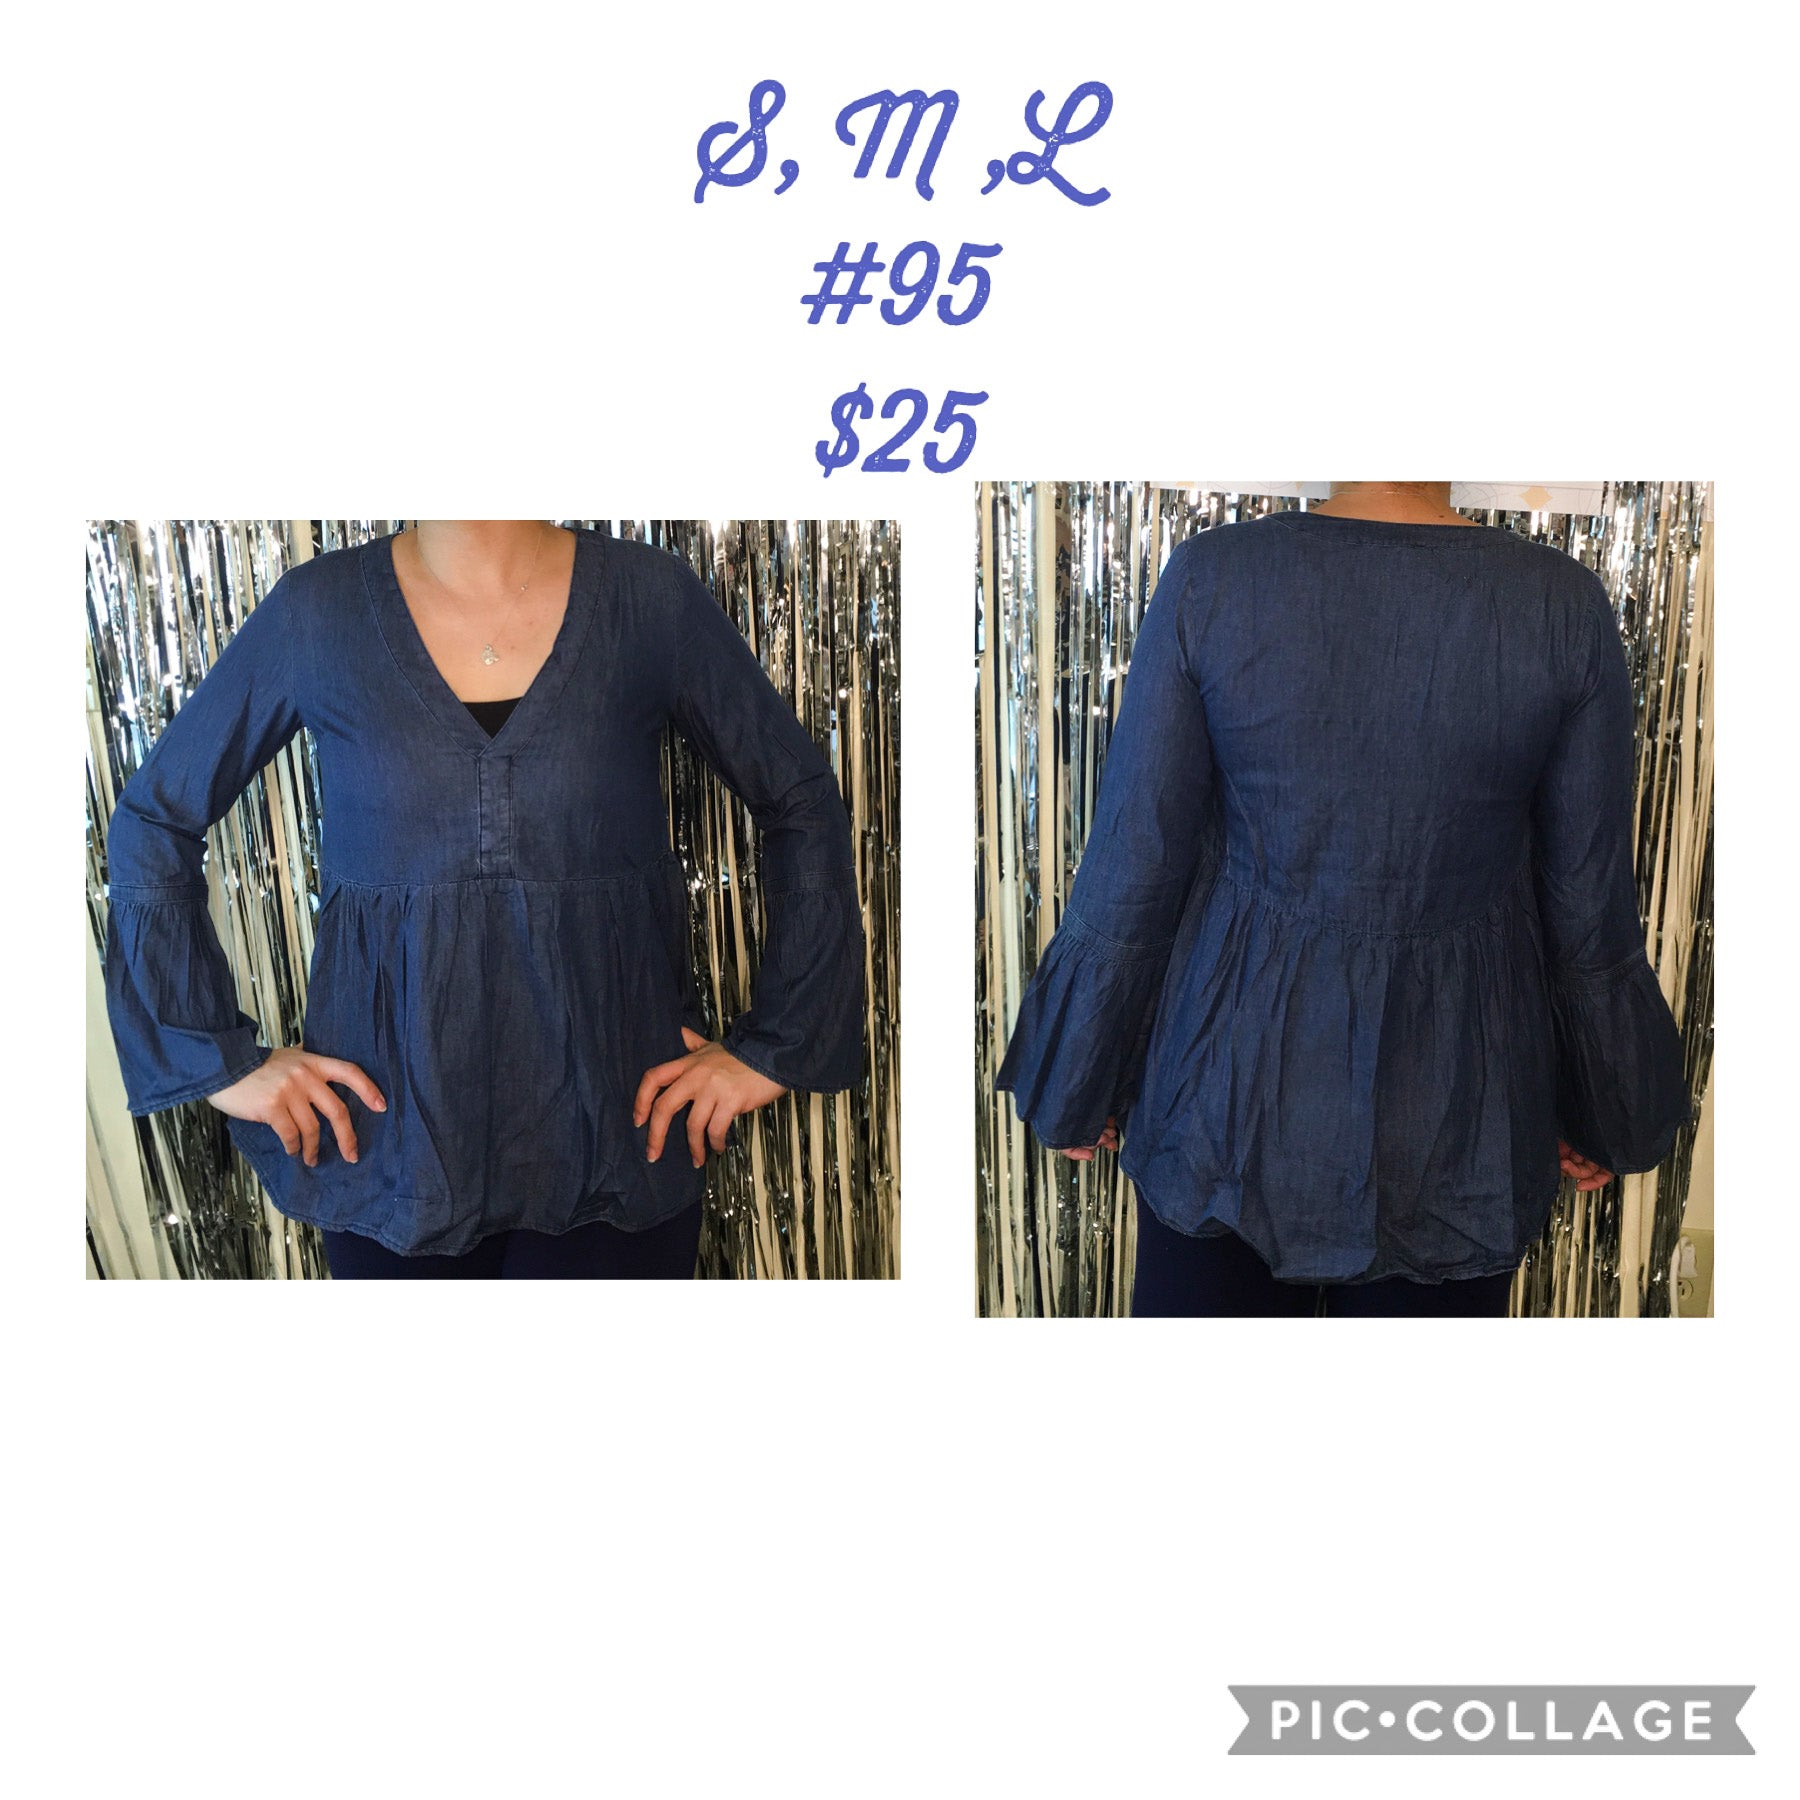 TBB Deals: Size Medium